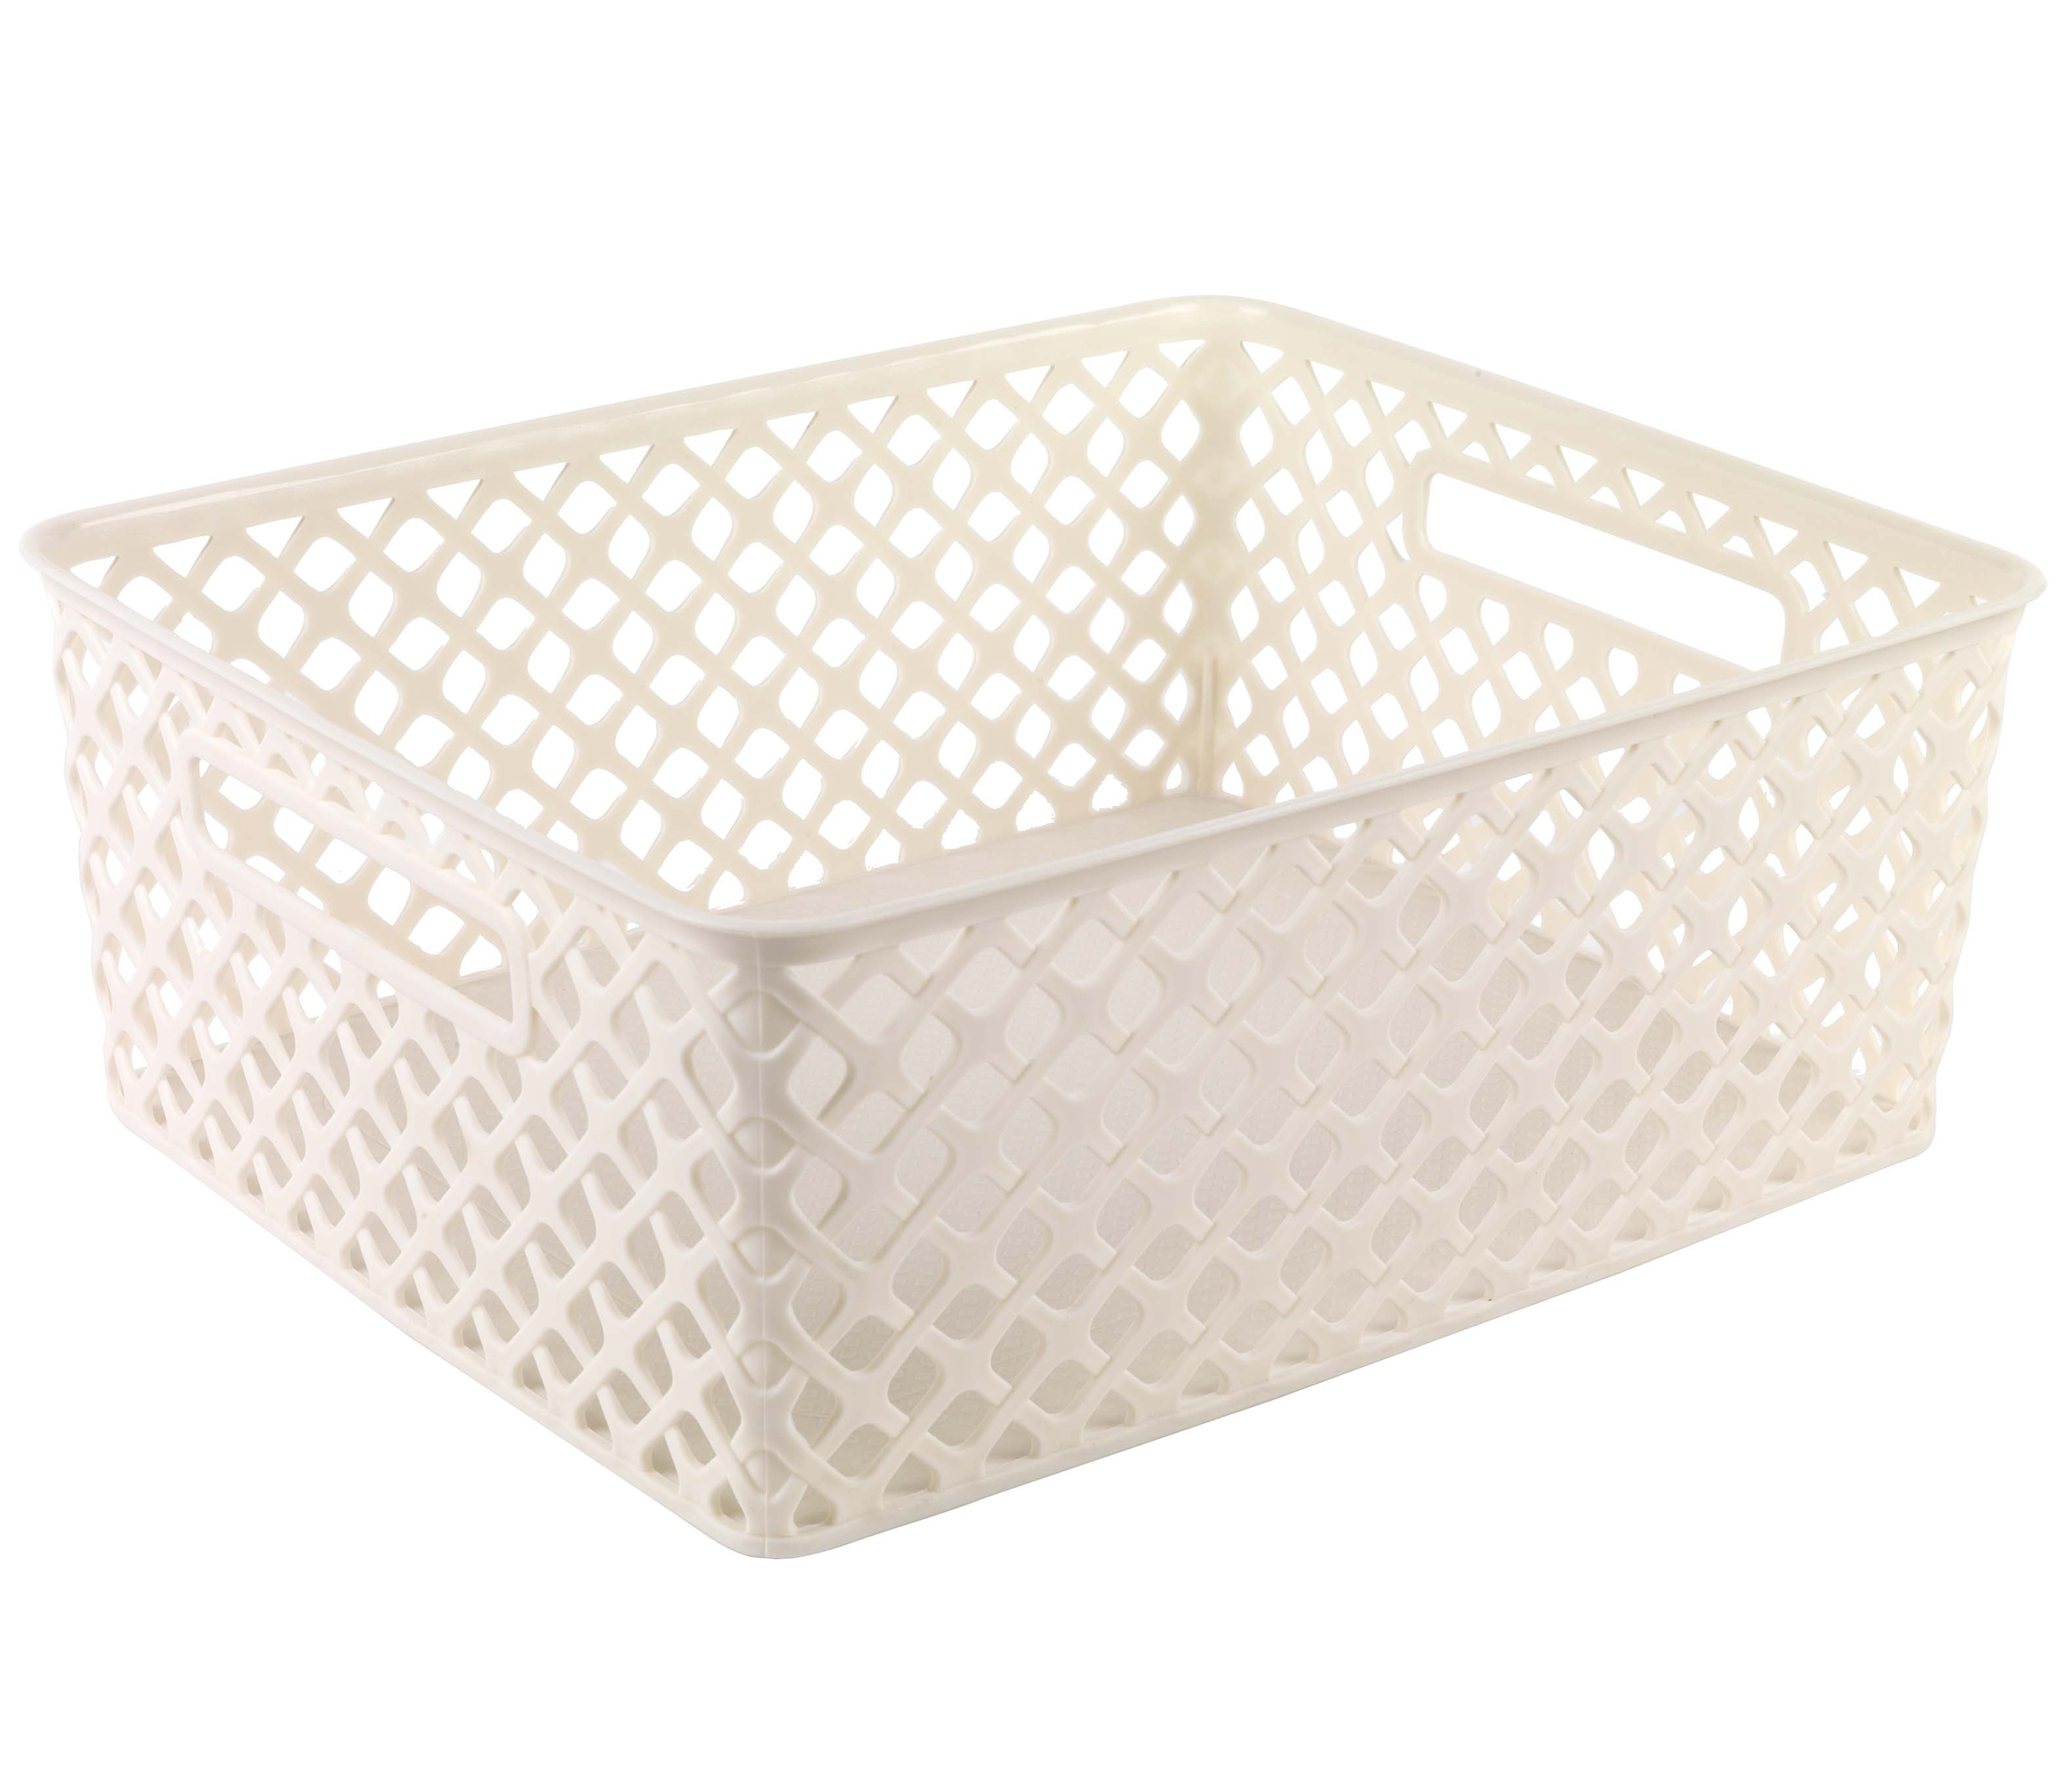 Beldray la038432 medium cream deco basket bathroom for Cream bathroom accessories